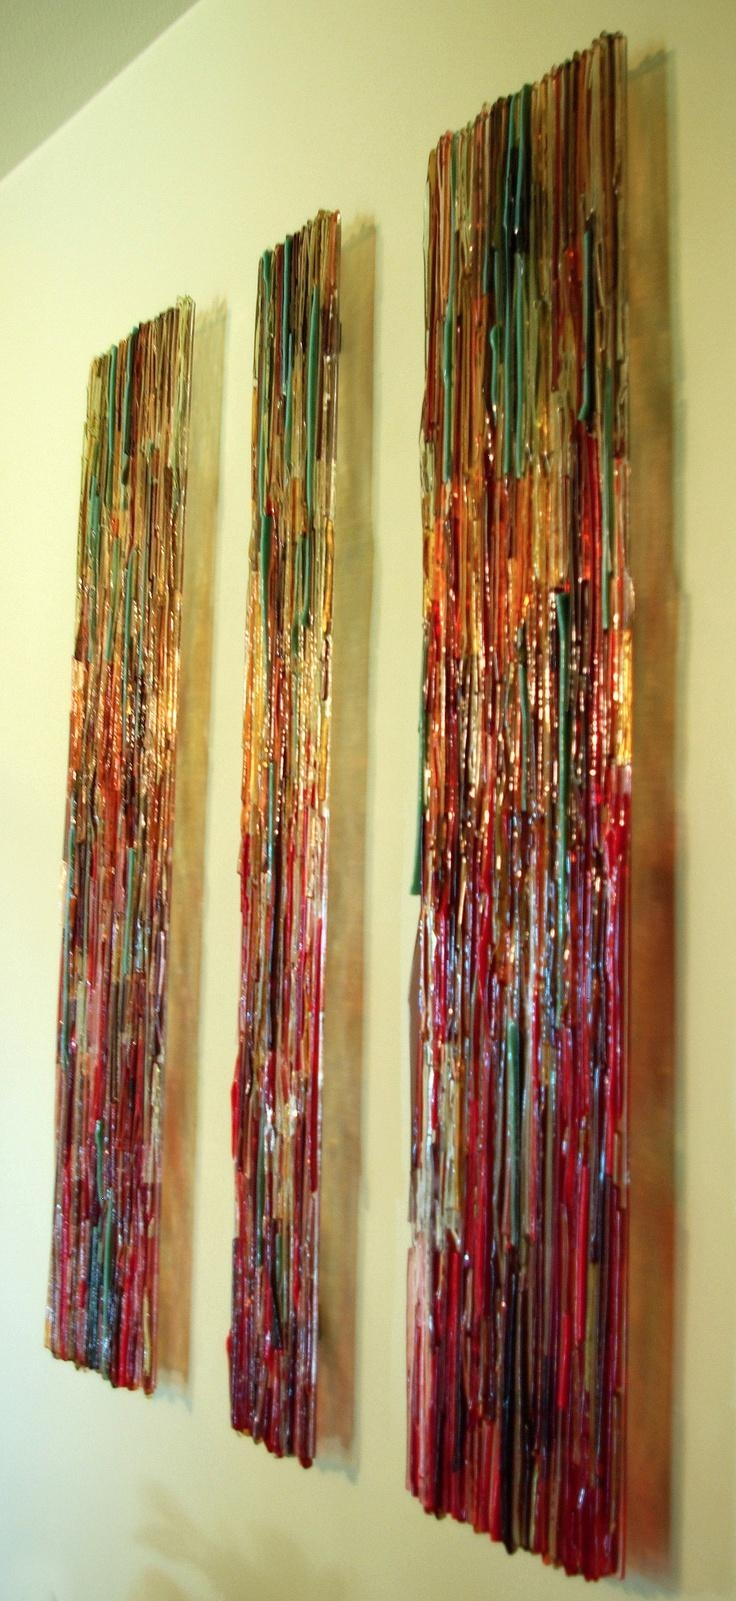 Wall Art Ideas: Fused Glass Wall Art Hanging (Explore #3 of 20 Photos)